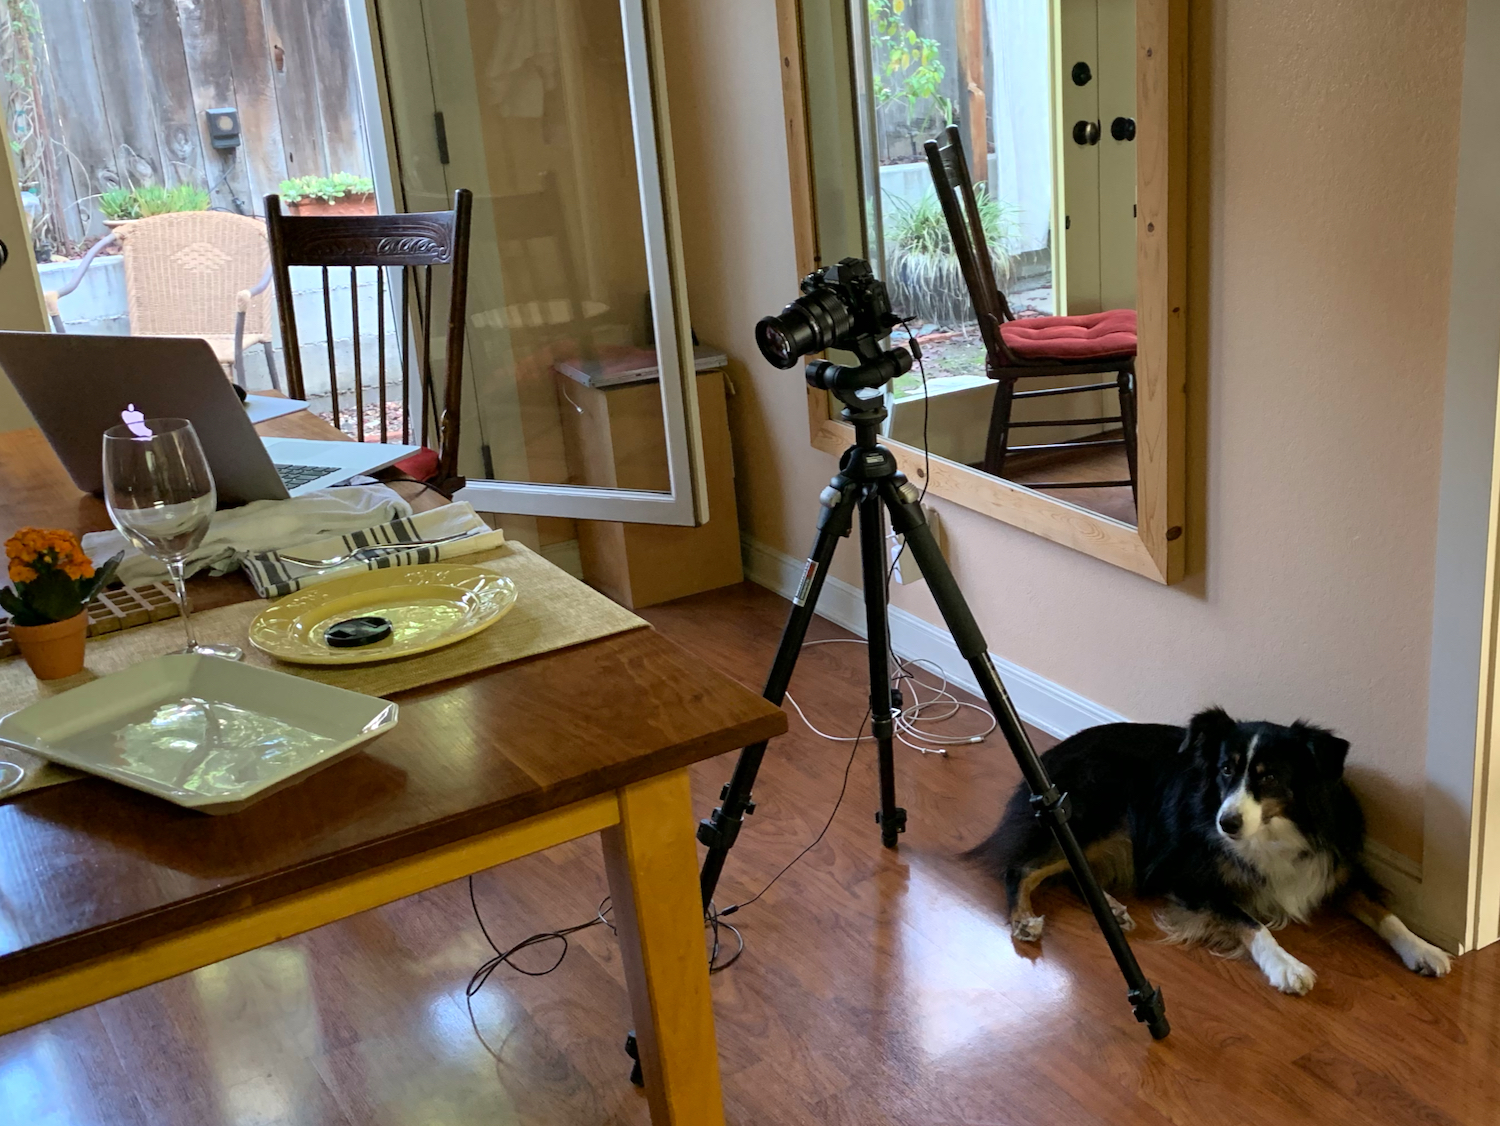 Riley waits right by the camera, as that is usually closest to the food.